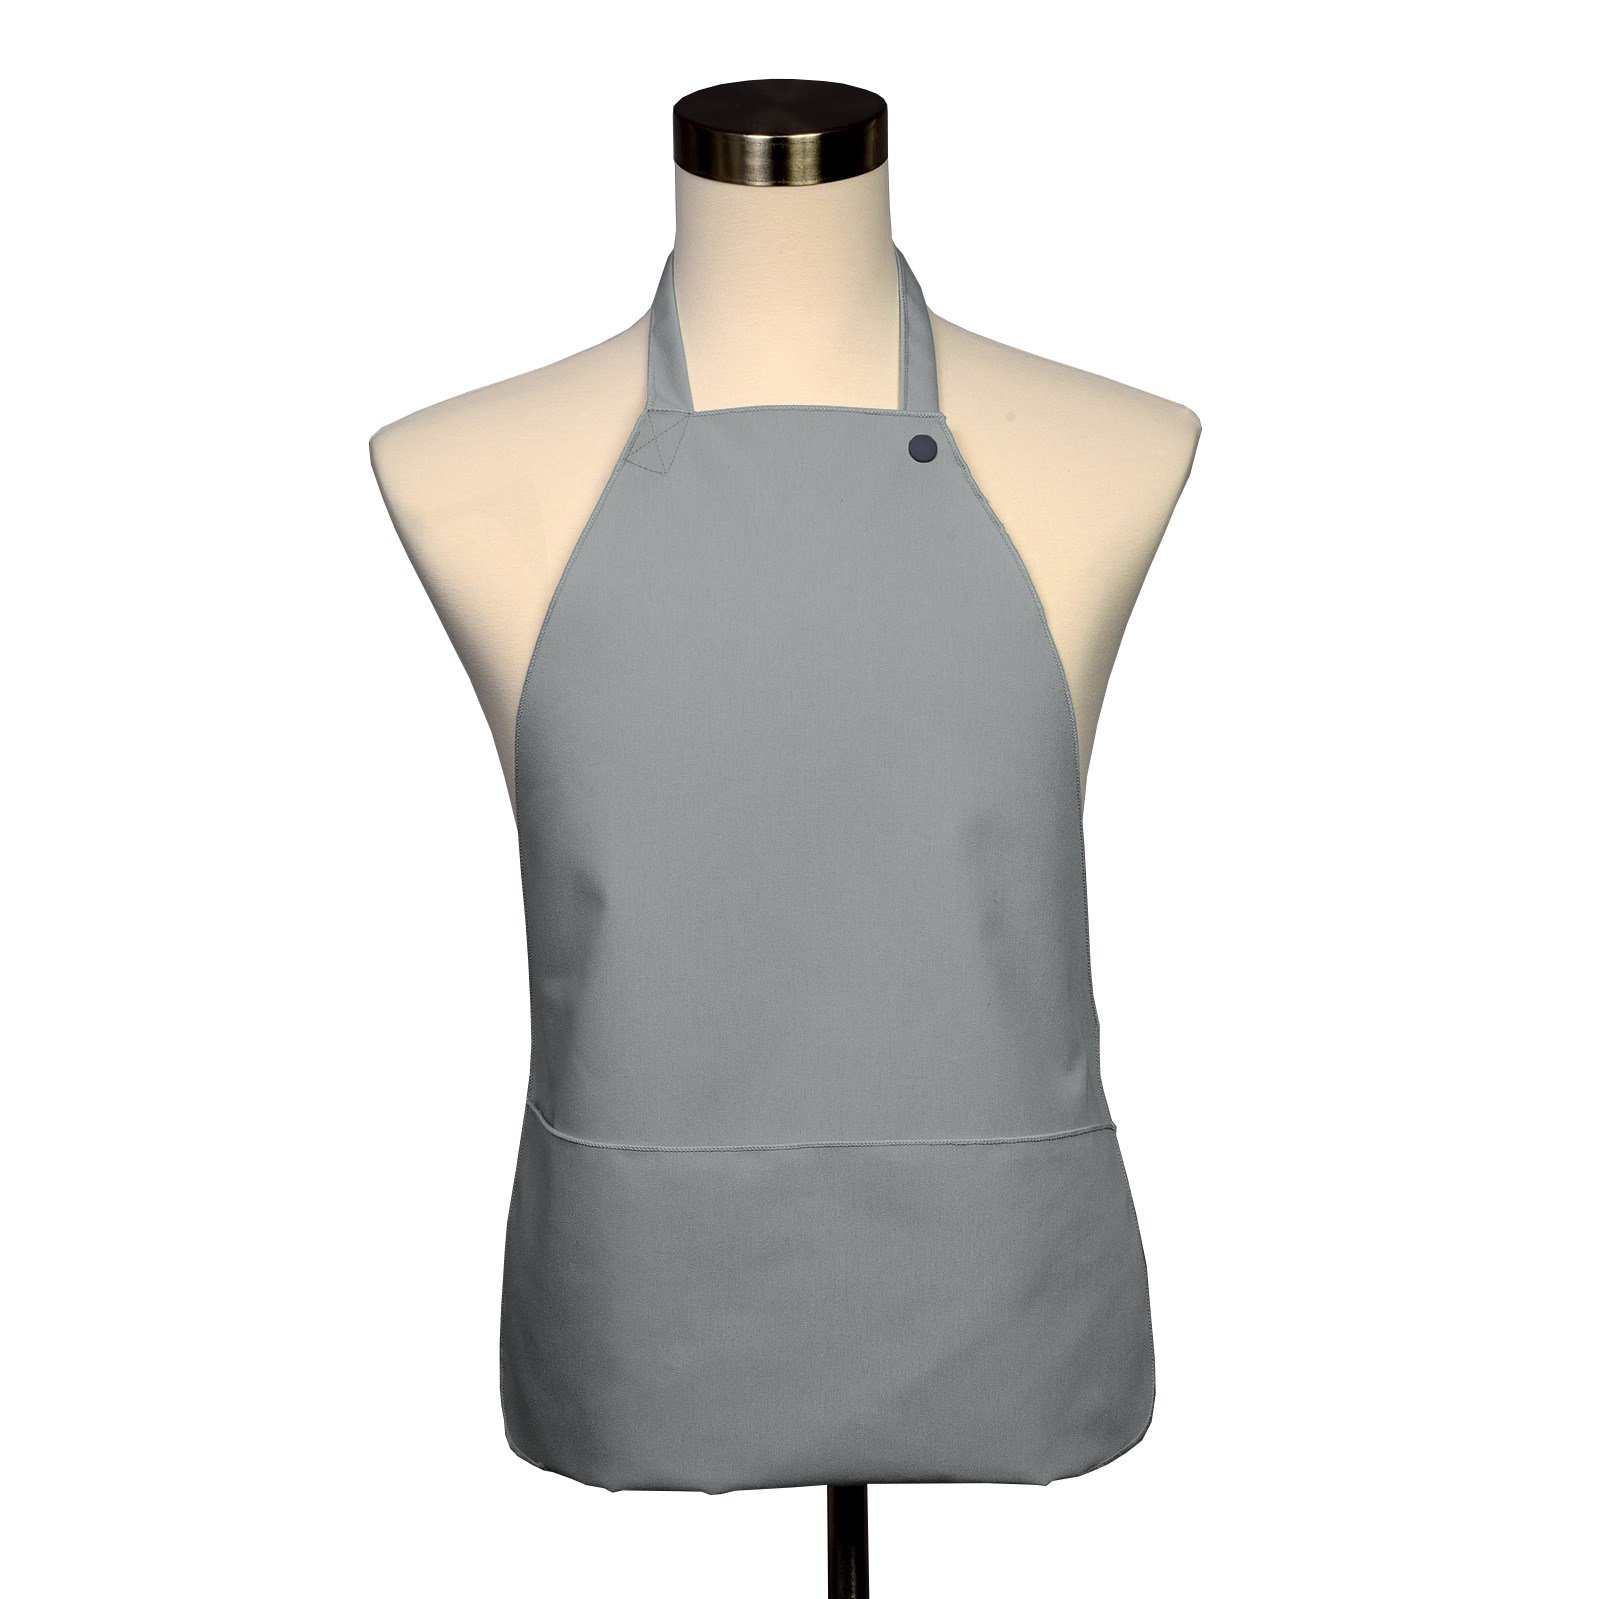 Adult Bib 10 Pack - Covered with Care Assorted Colors Available! (Gray) by Fabric Textile Products